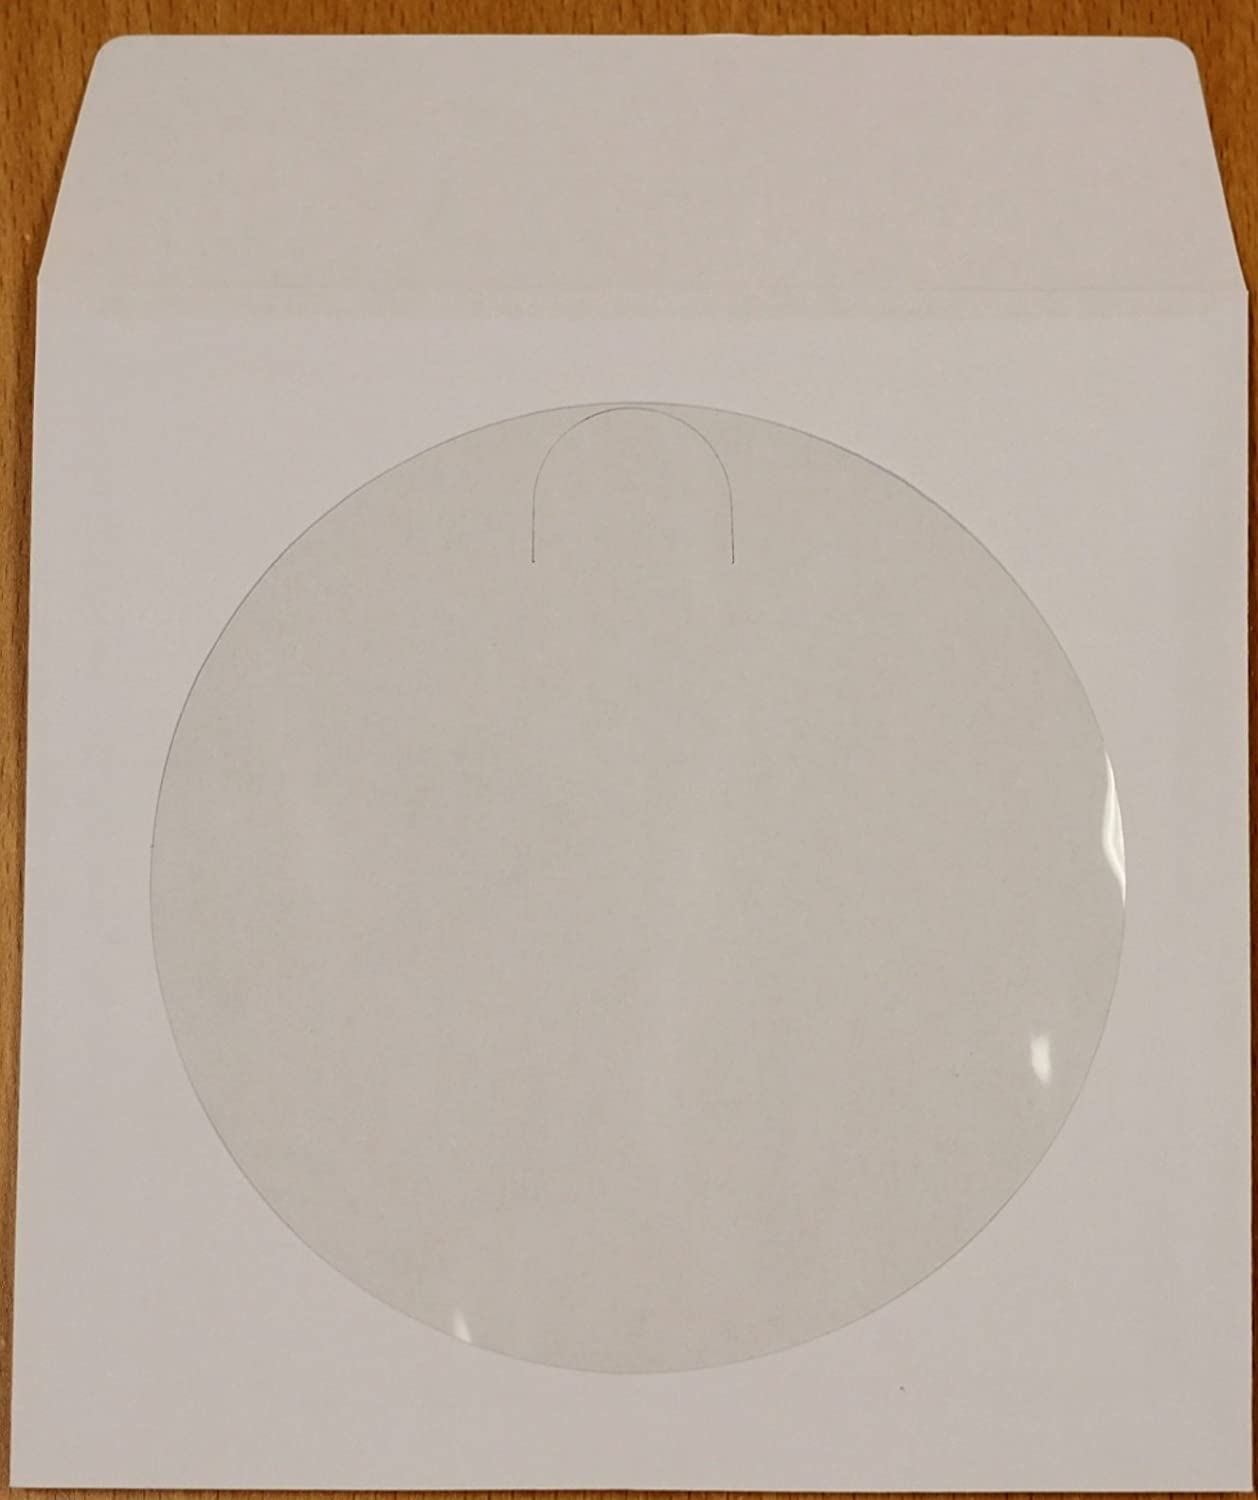 500 White Paper CD / DVD Disc Sleeves With Flap & Window #CDIWWF - Perfect for Storing CDs and DVD Discs!